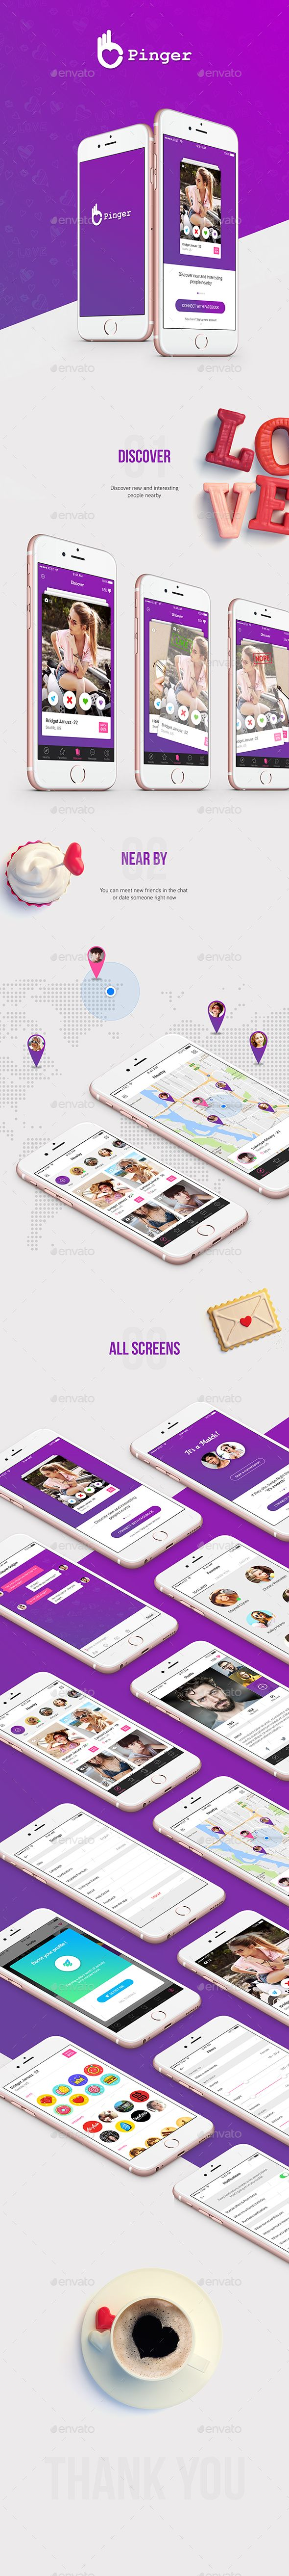 Pinger - Dating #UI Kit - #User Interfaces #Web Elements Download here: https://graphicriver.net/item/pinger-dating-ui-kit/19720119?ref=alena994